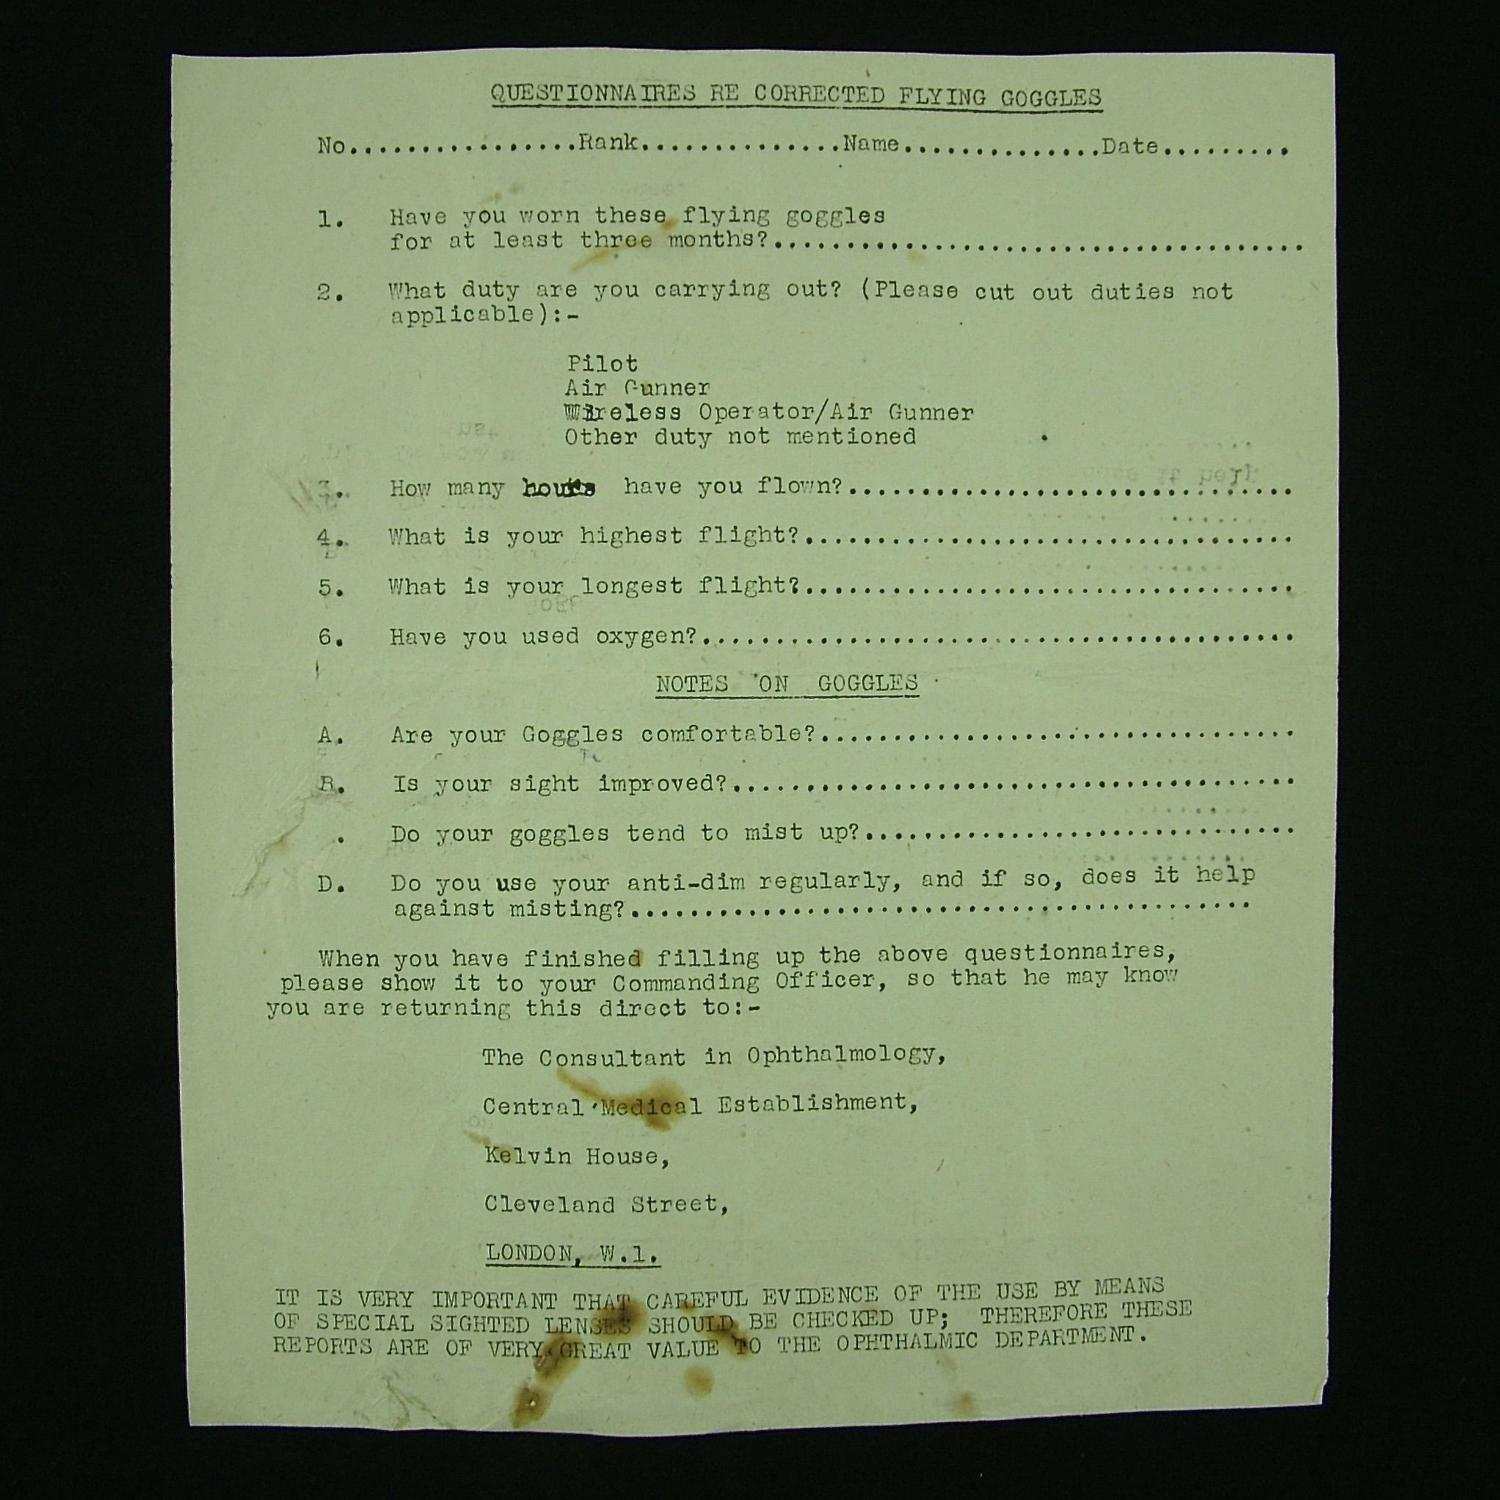 RAF document regarding flying goggles with corrective lenses